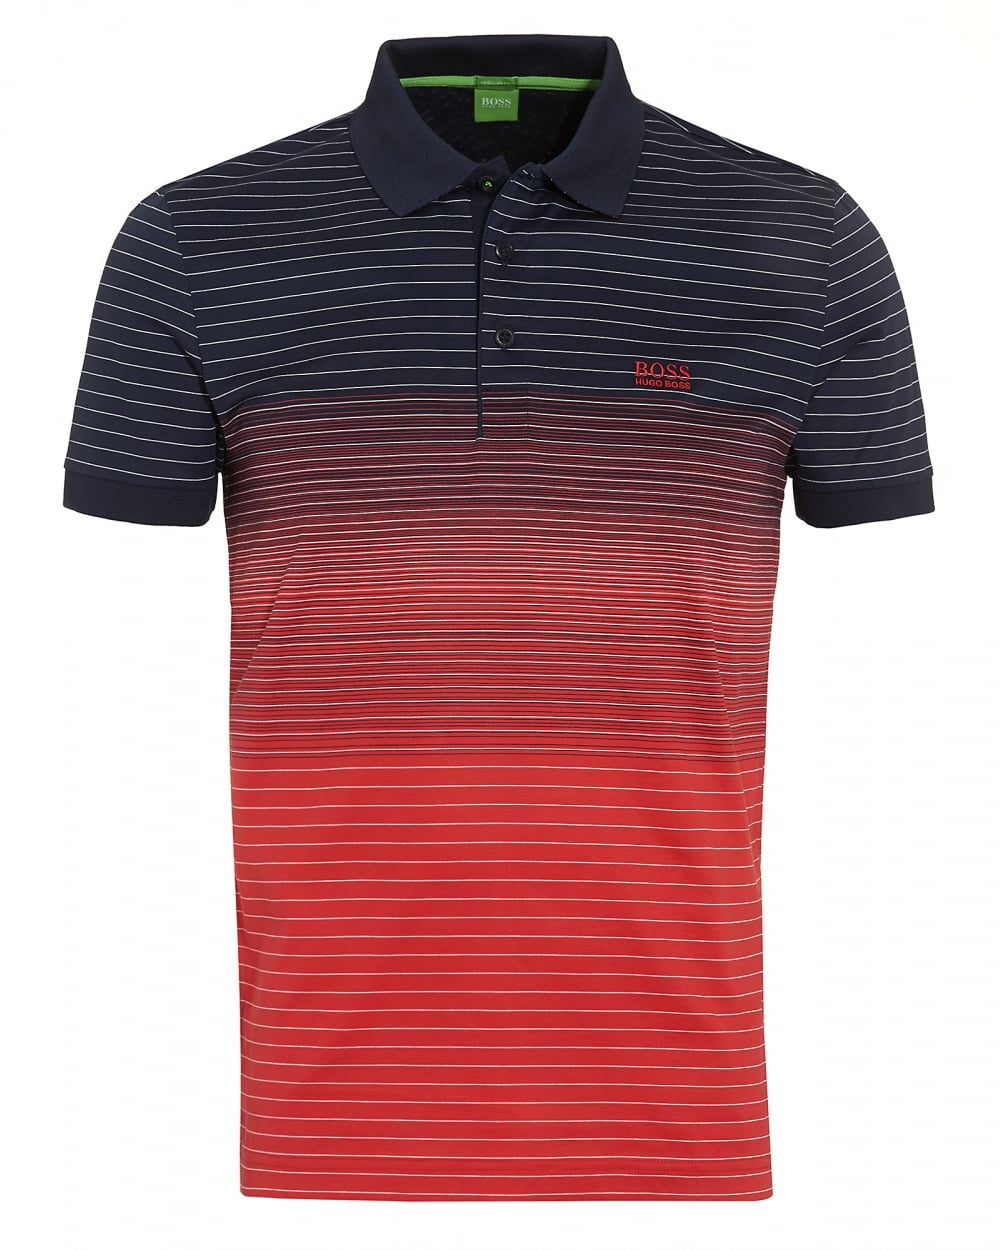 Hugo boss green mens paddy 3 navy red faded stripe polo shirt for Hugo boss green polo shirt sale